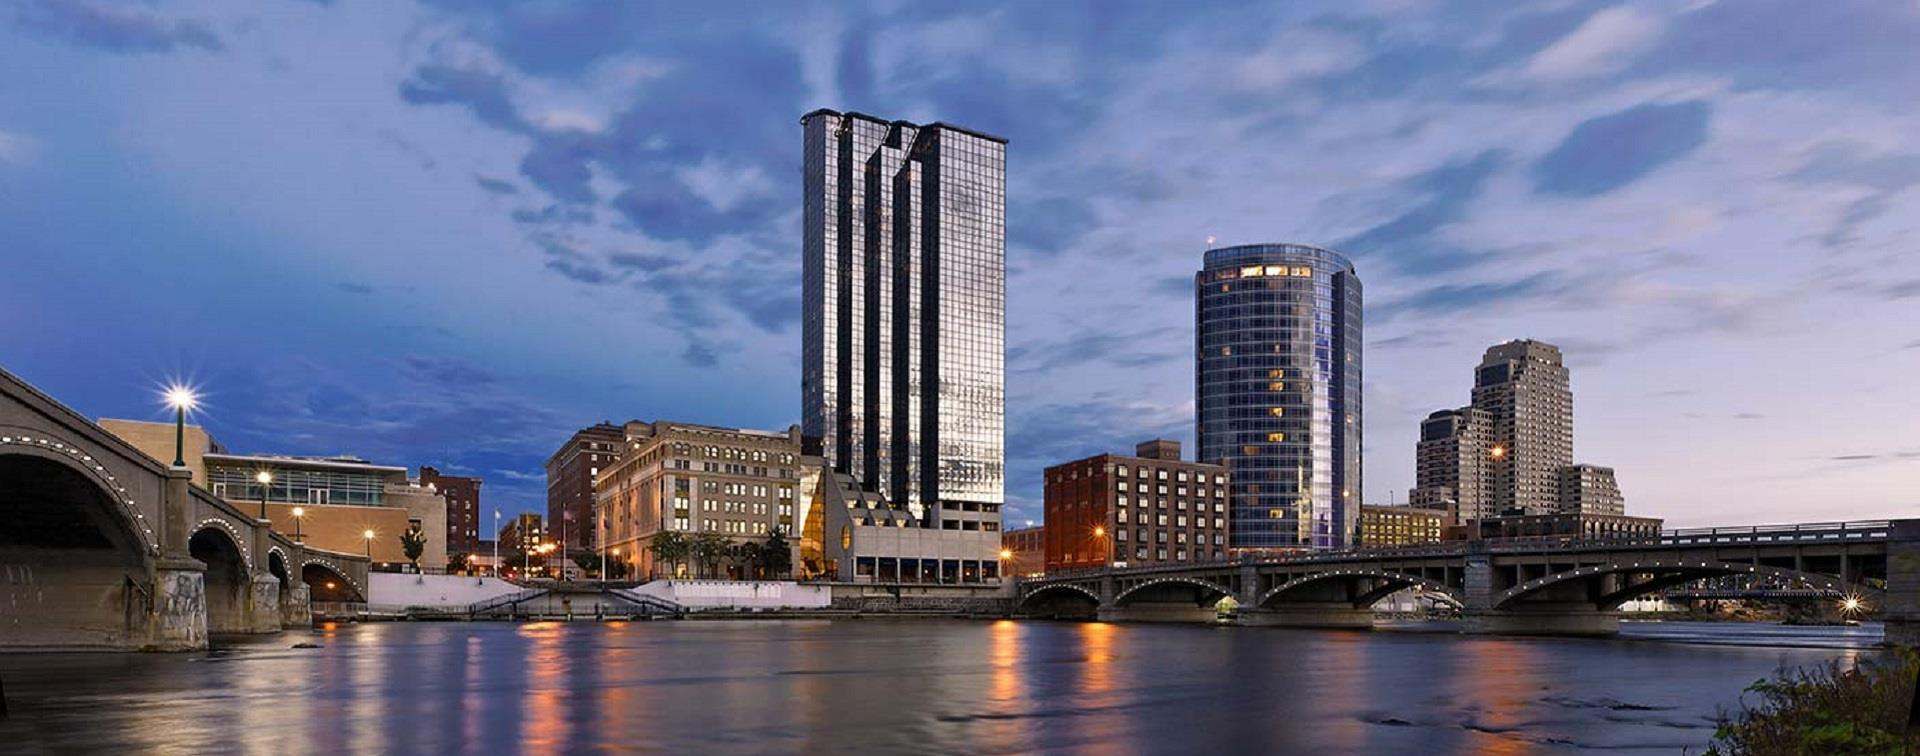 Grand-Rapids-Downtown-Skyline